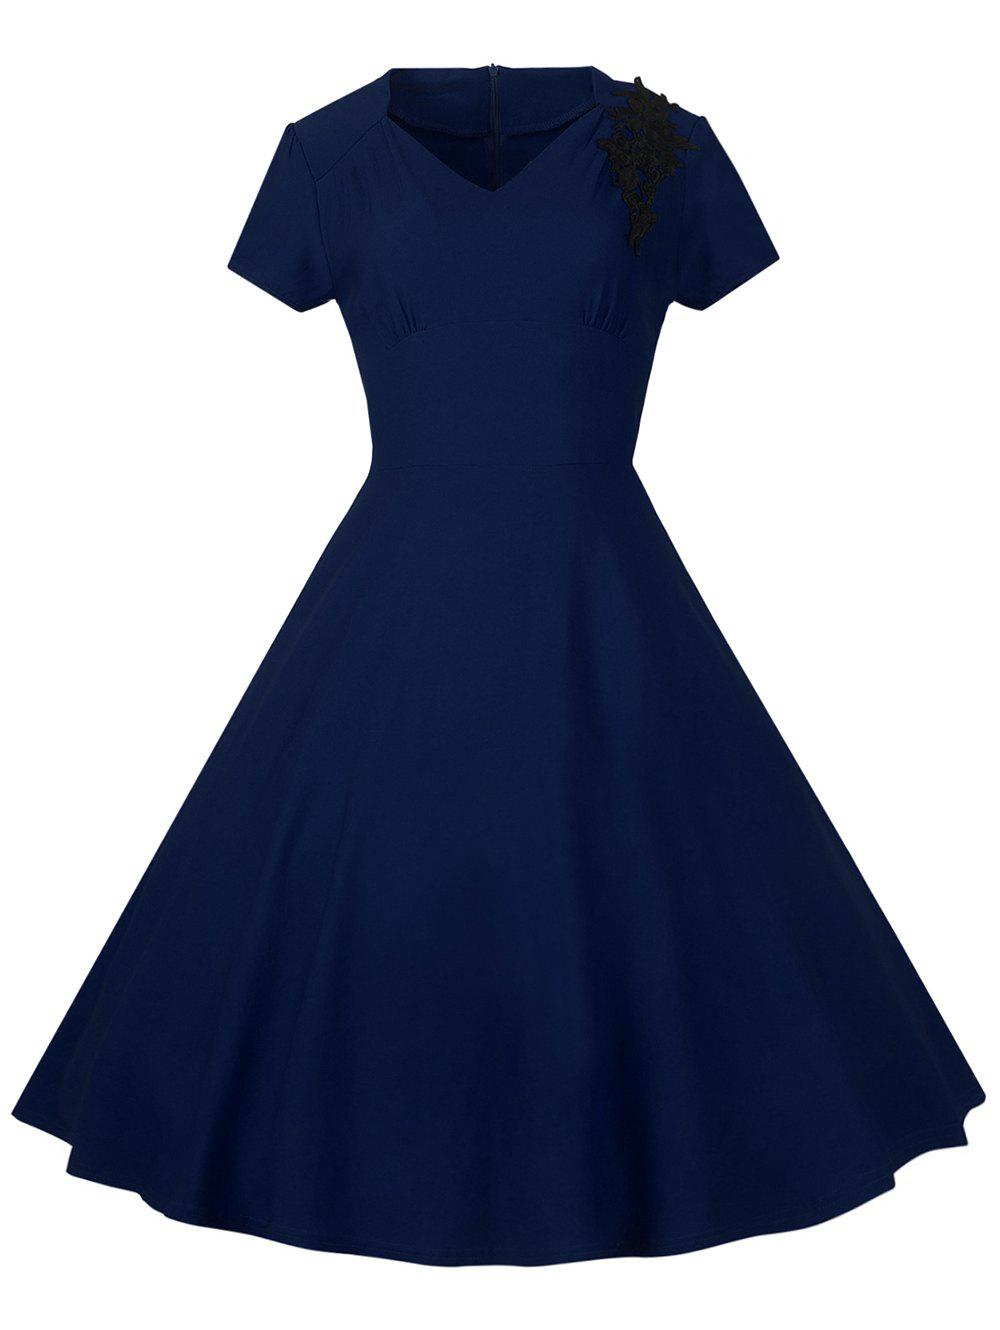 Chic Lace Embroidered Insert 1940S Cocktail Swing Dress